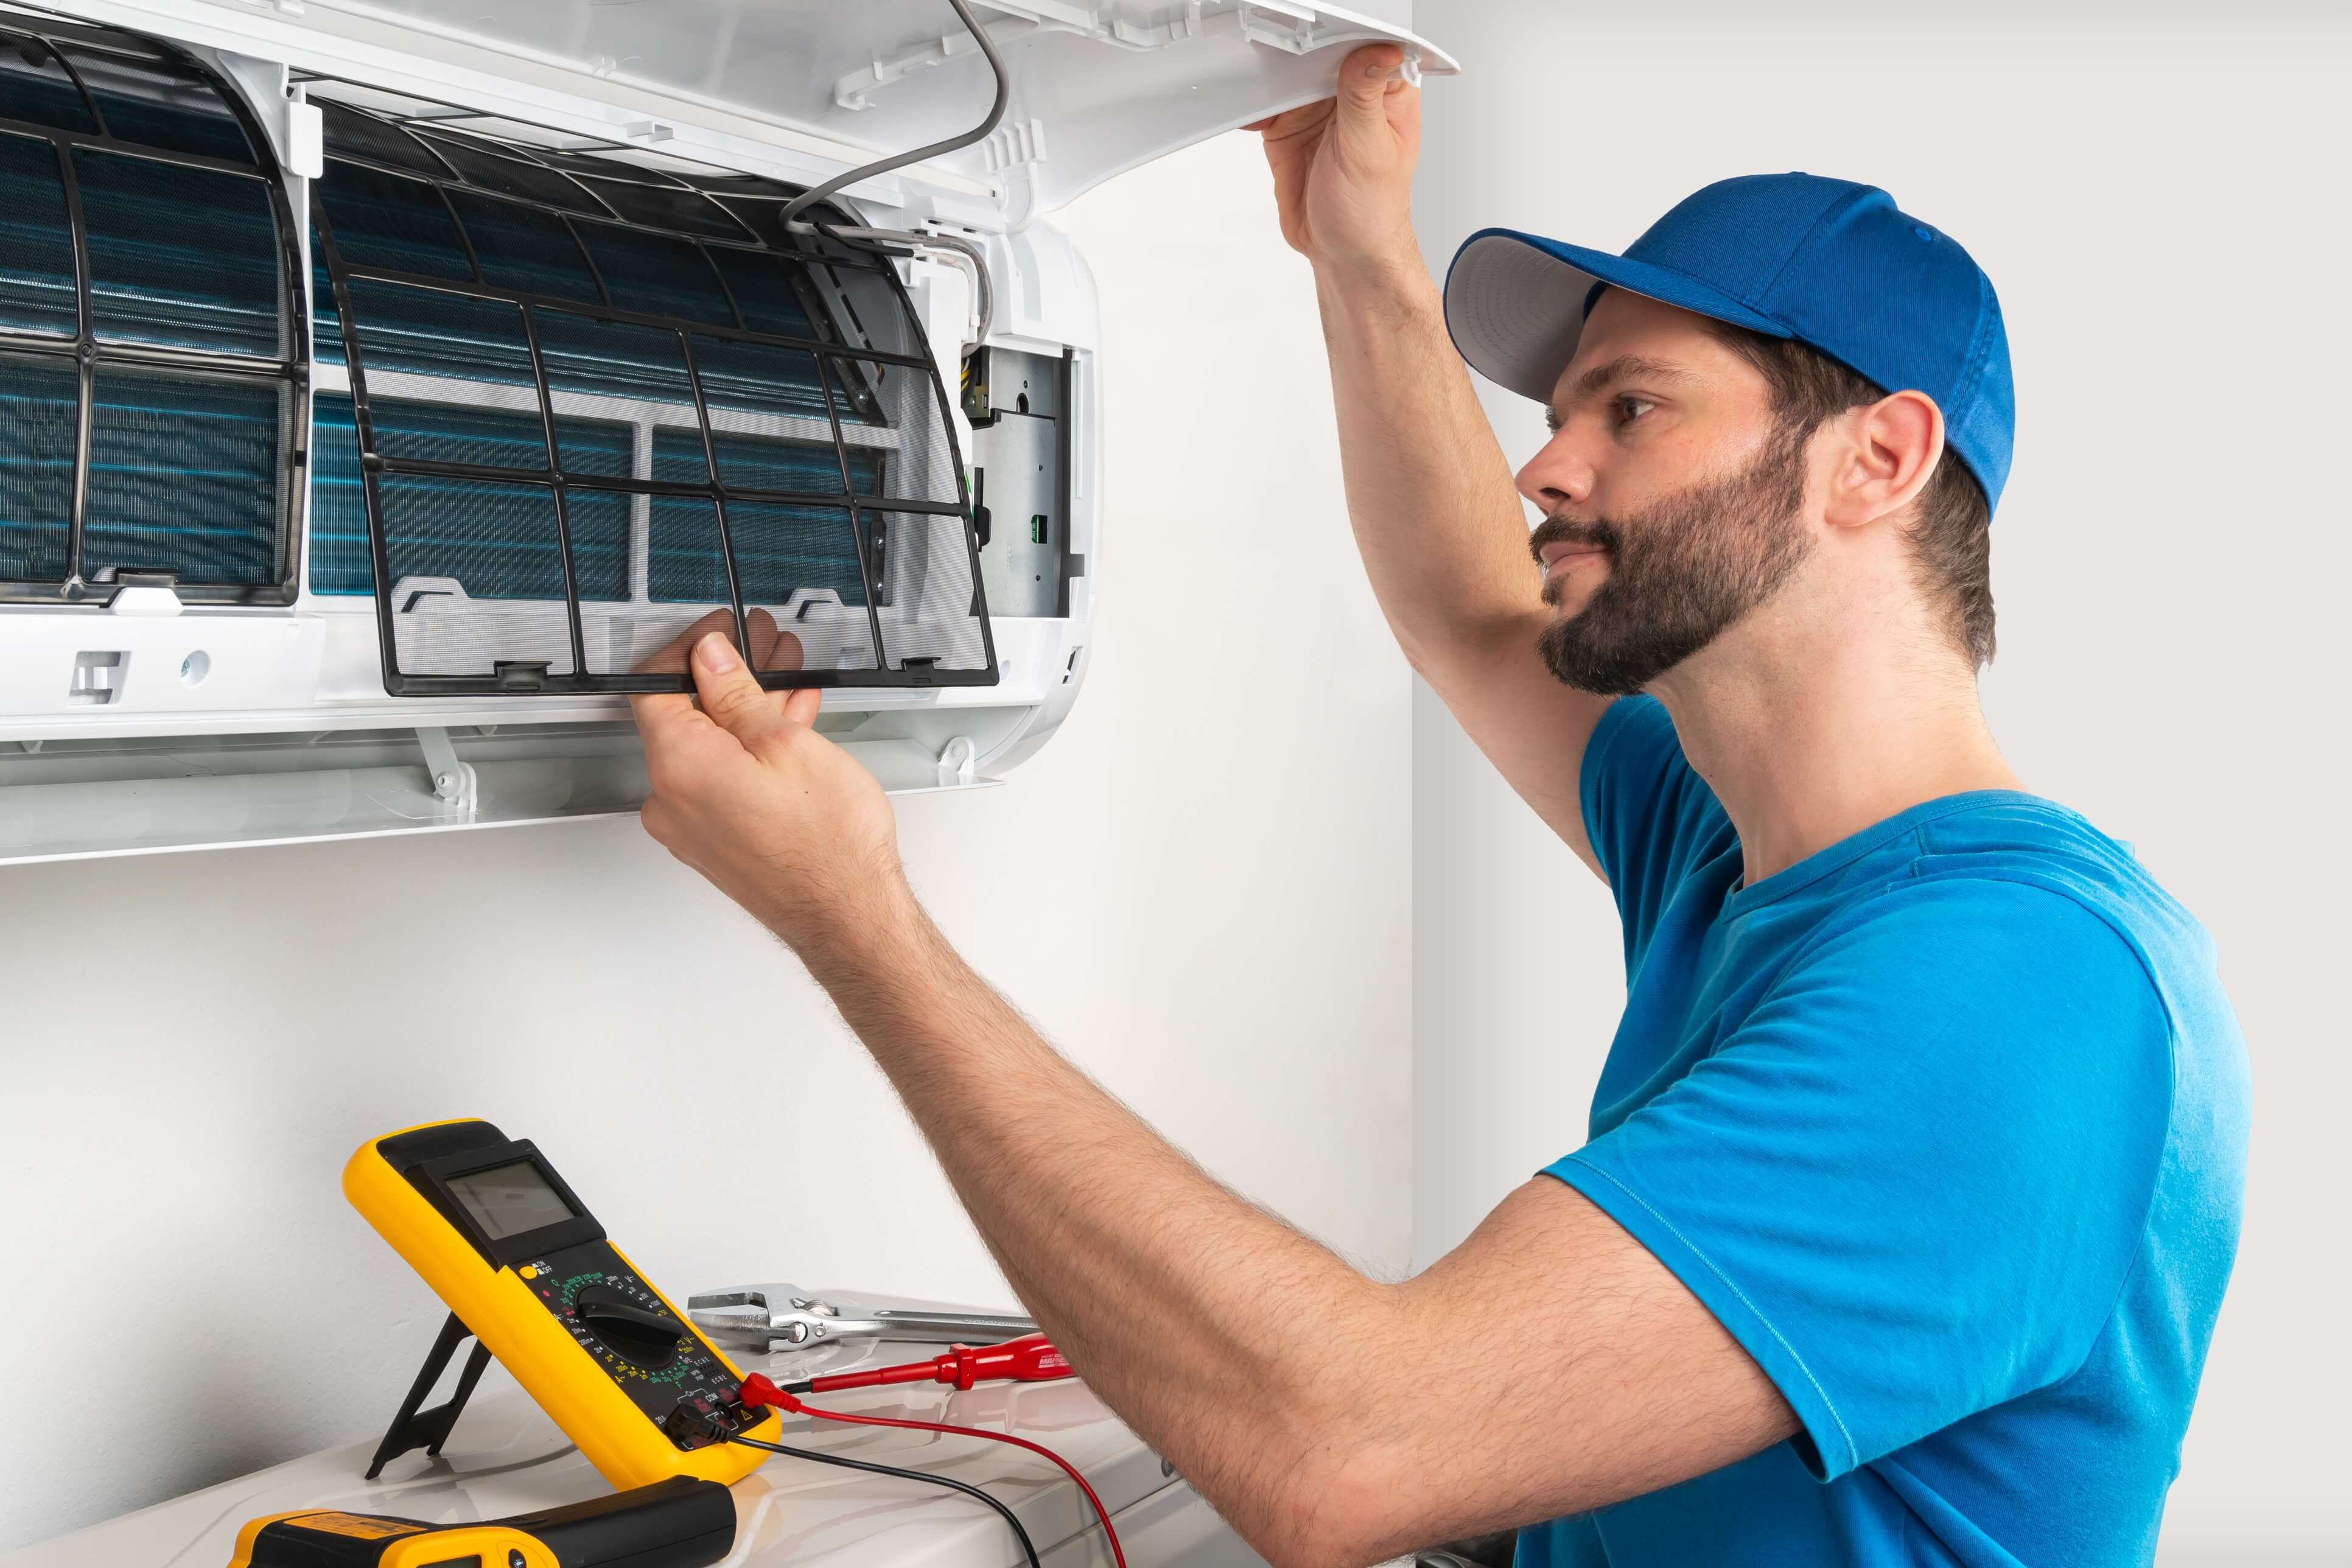 How Your St. Albert HVAC Company Can Prepare Your HVAC System for Spring